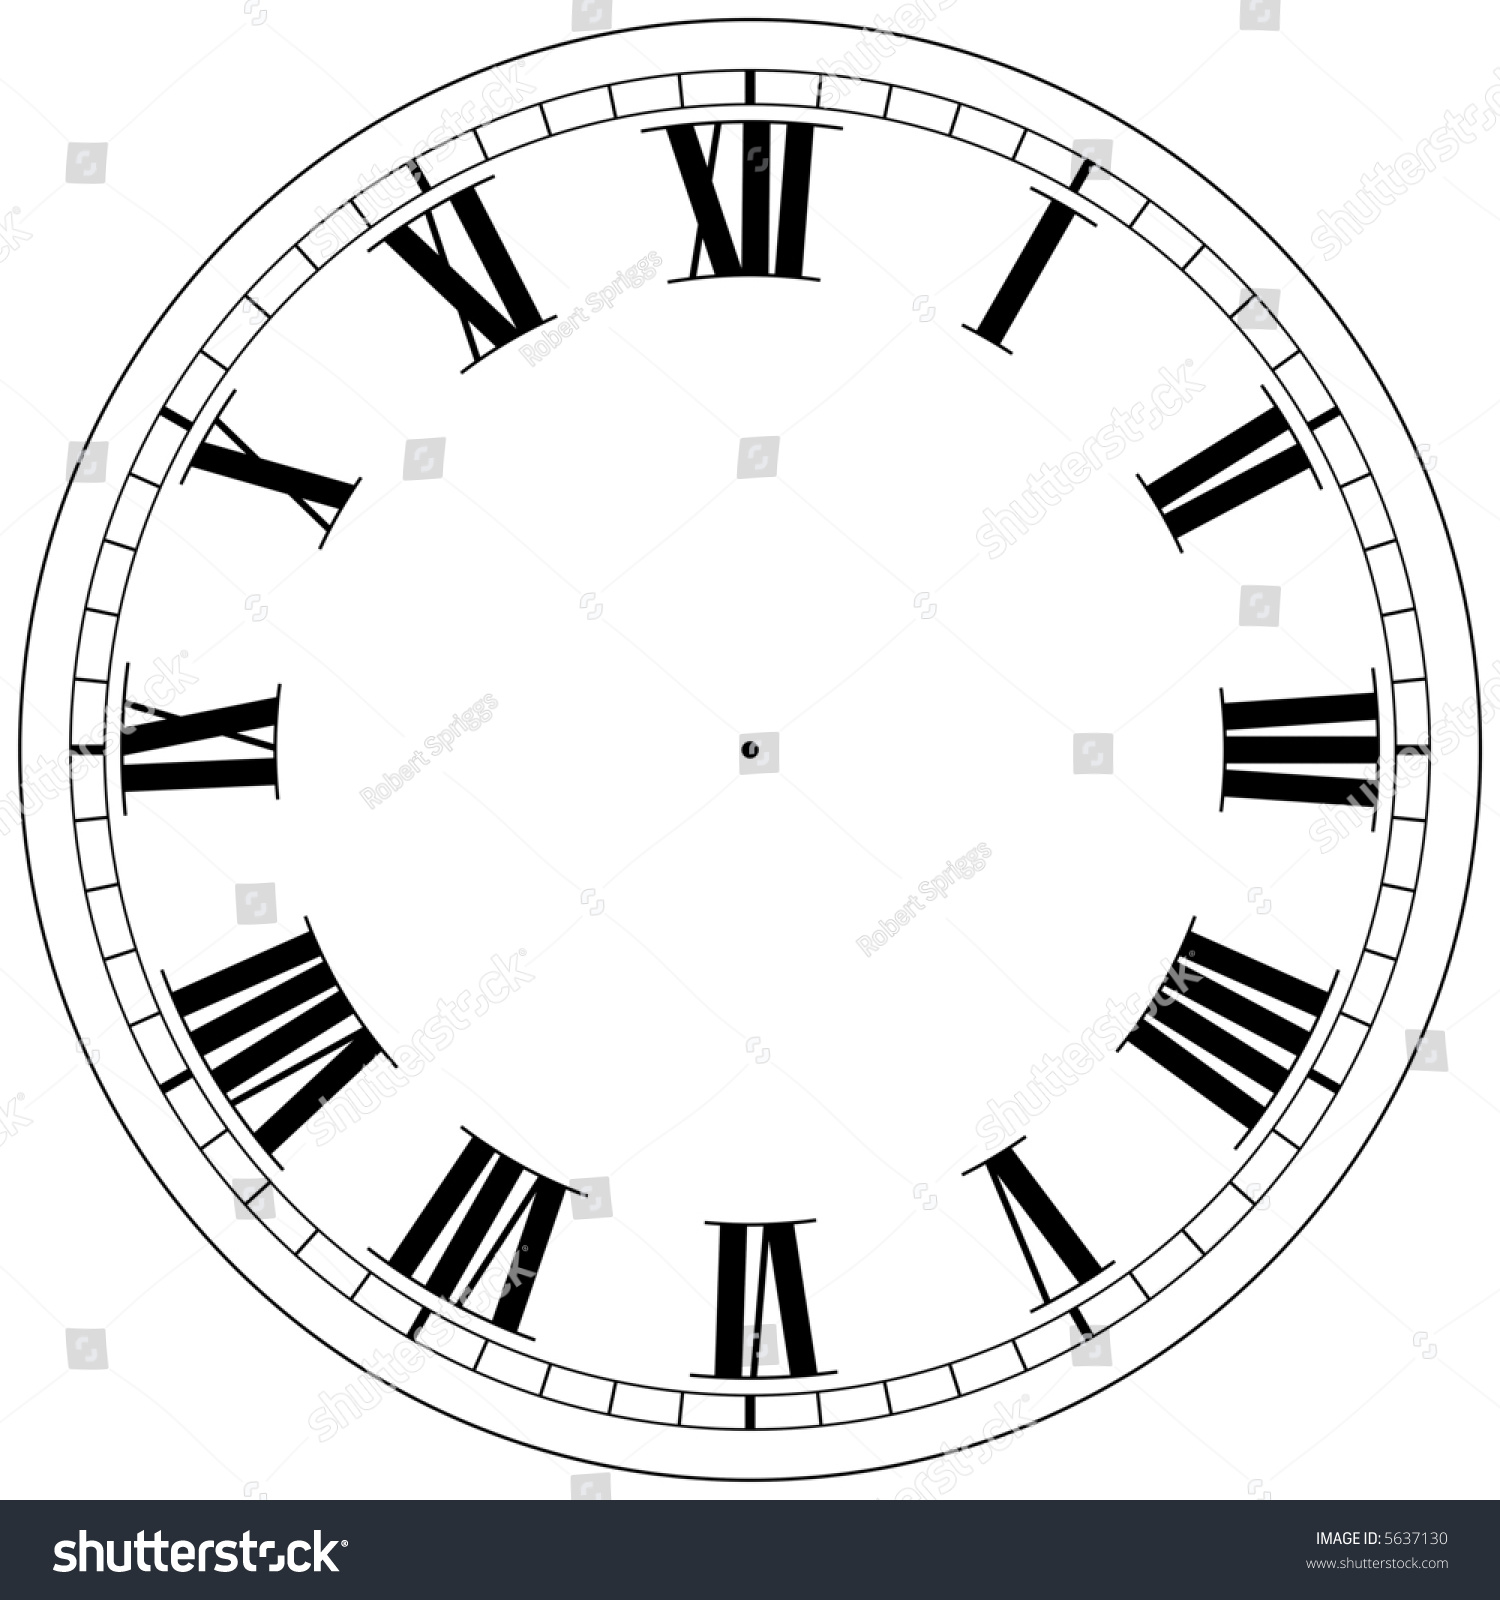 Precision Roman Clock Face Template Stock Illustration